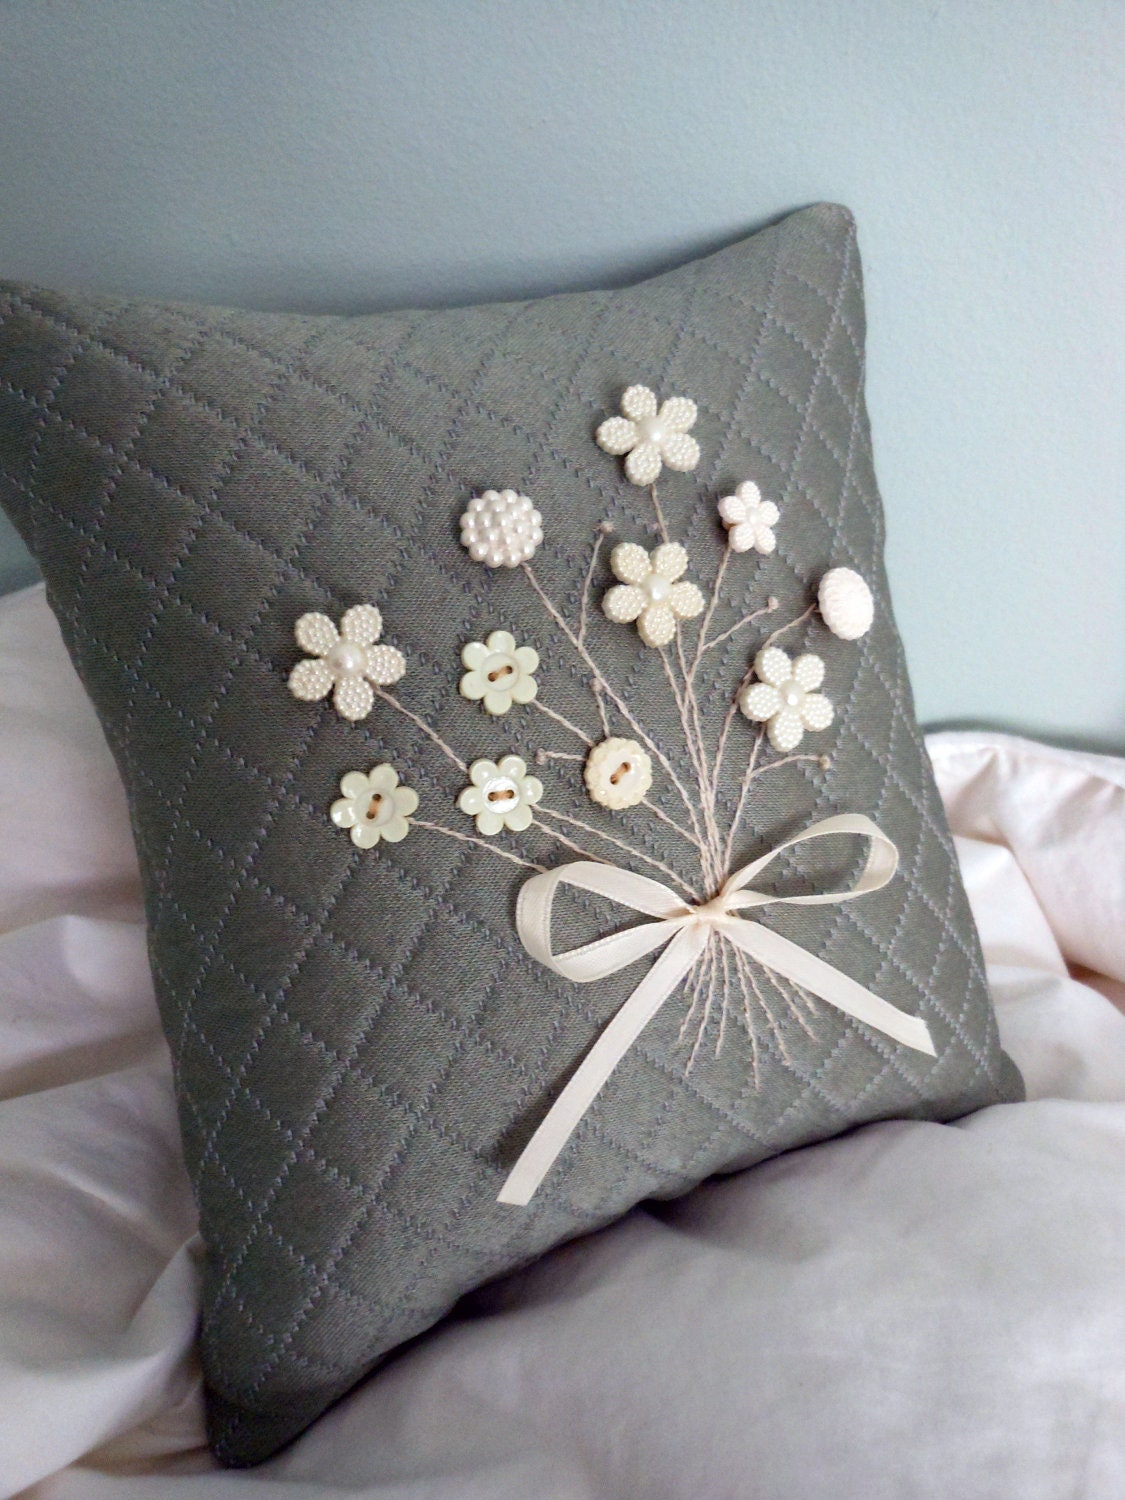 Decorative Pillow Quilted Gray Pillow with White by AThymetoSew